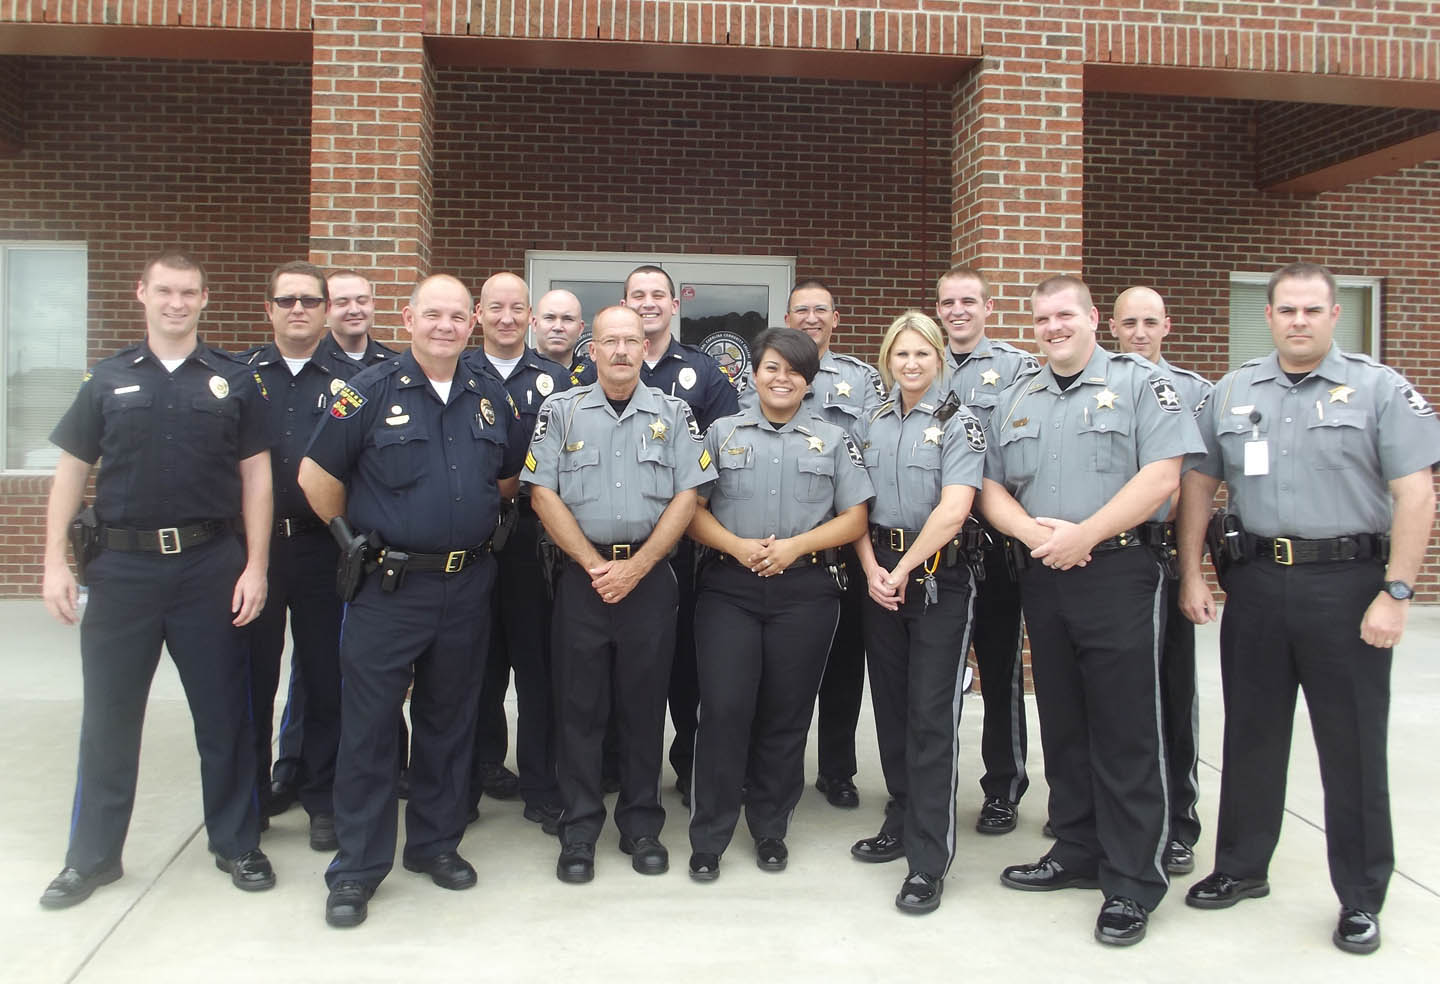 Read the full story, Law officers graduate Crisis Intervention Training